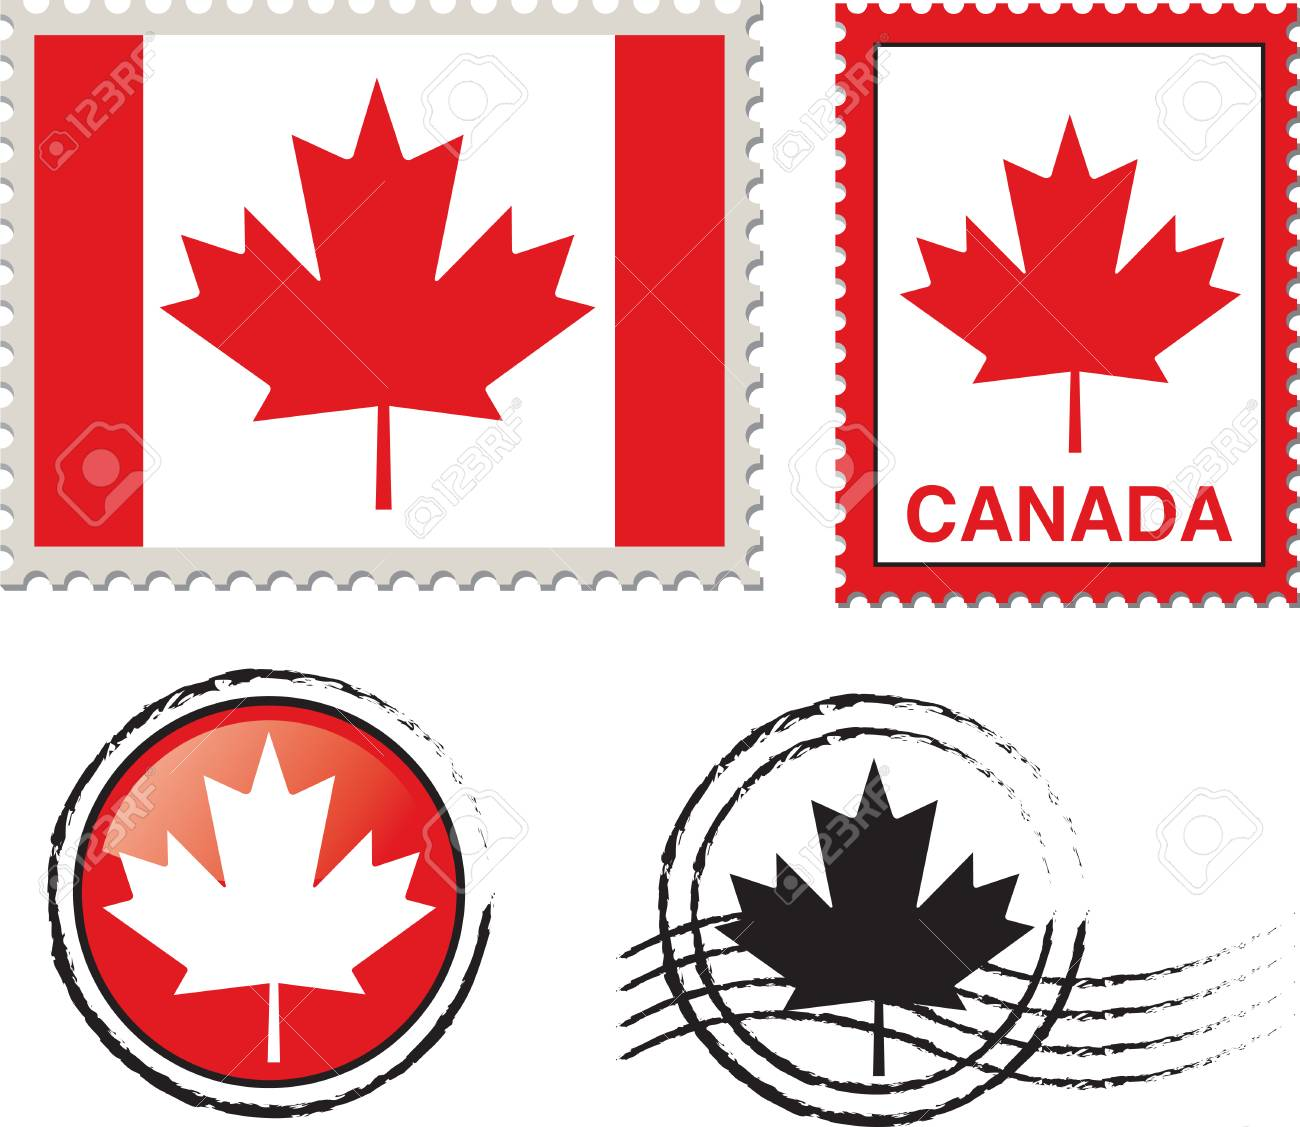 canada flag stamp Stock Vector - 24807884